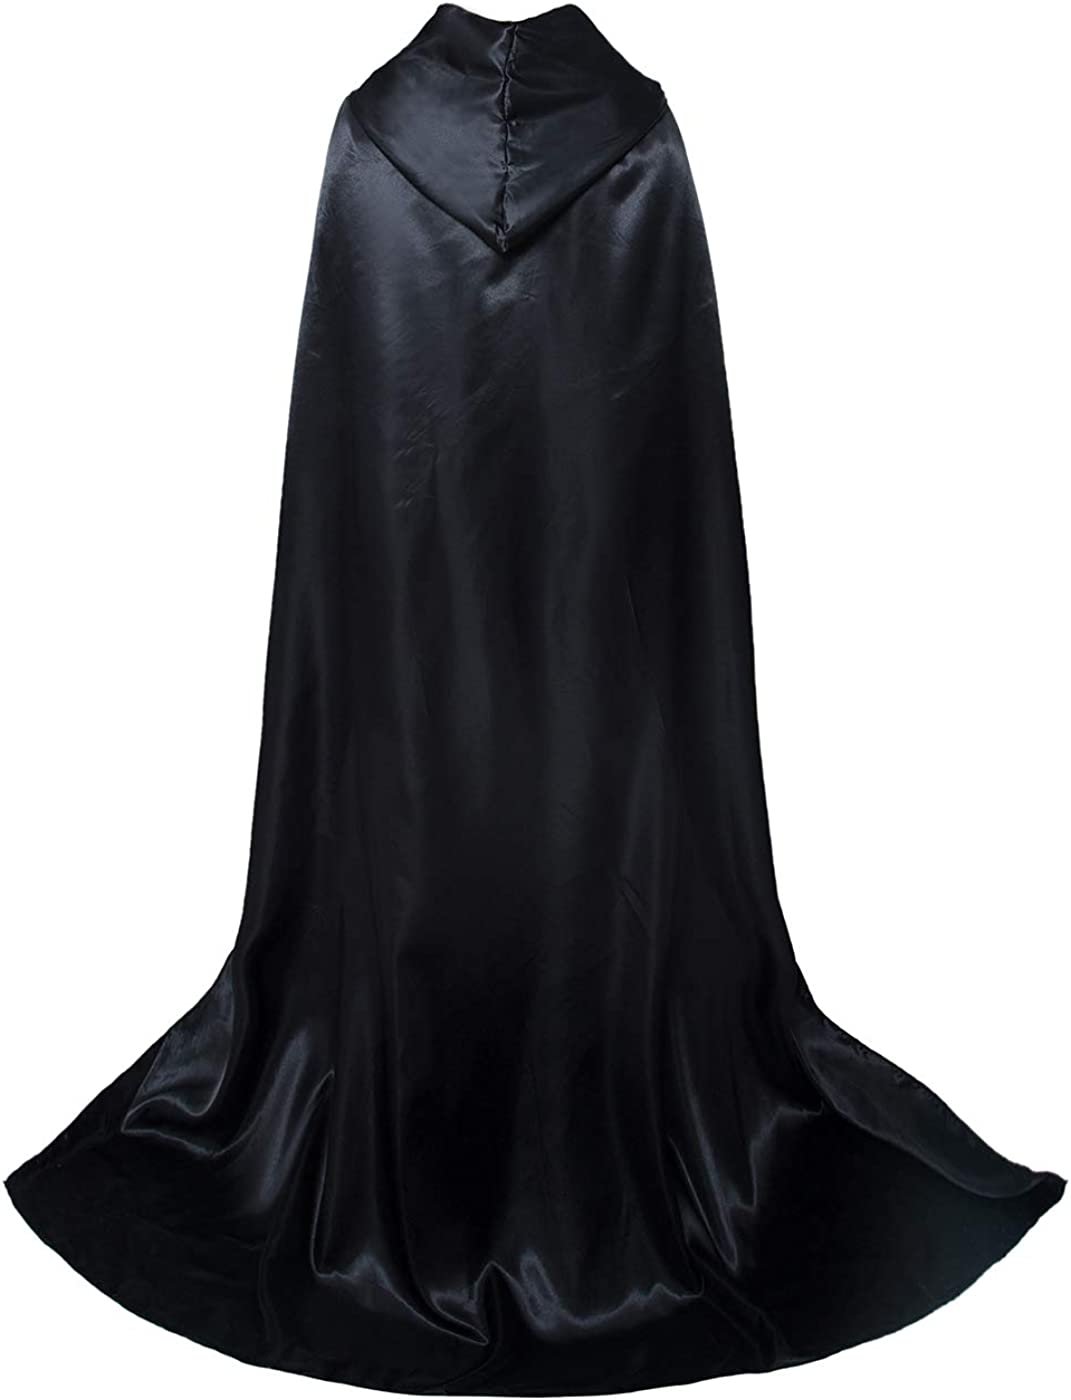 Aricy Unisex Full Length Hooded Cape Halloween Role Play Cloak Costume A004BXXL Black